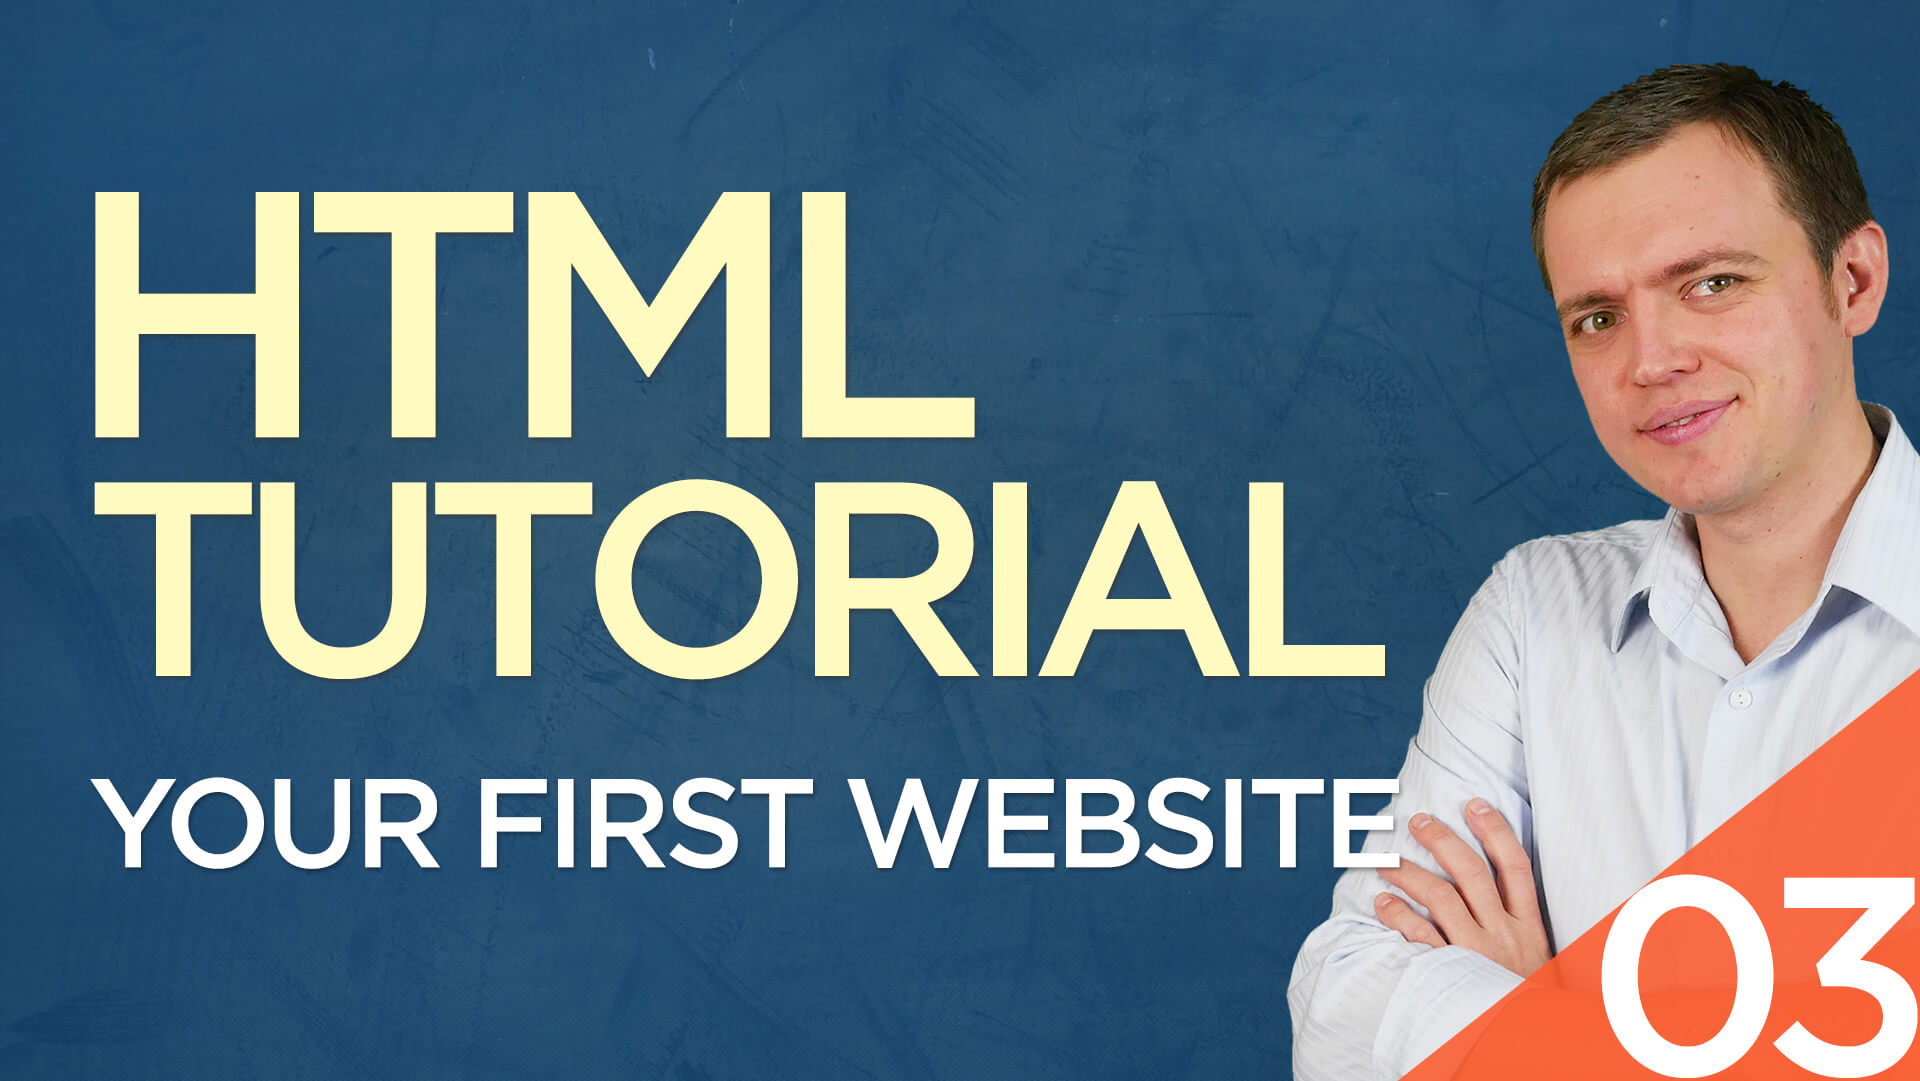 HTML Tutorial for Beginners: 03 Creating Your First Website with HTML